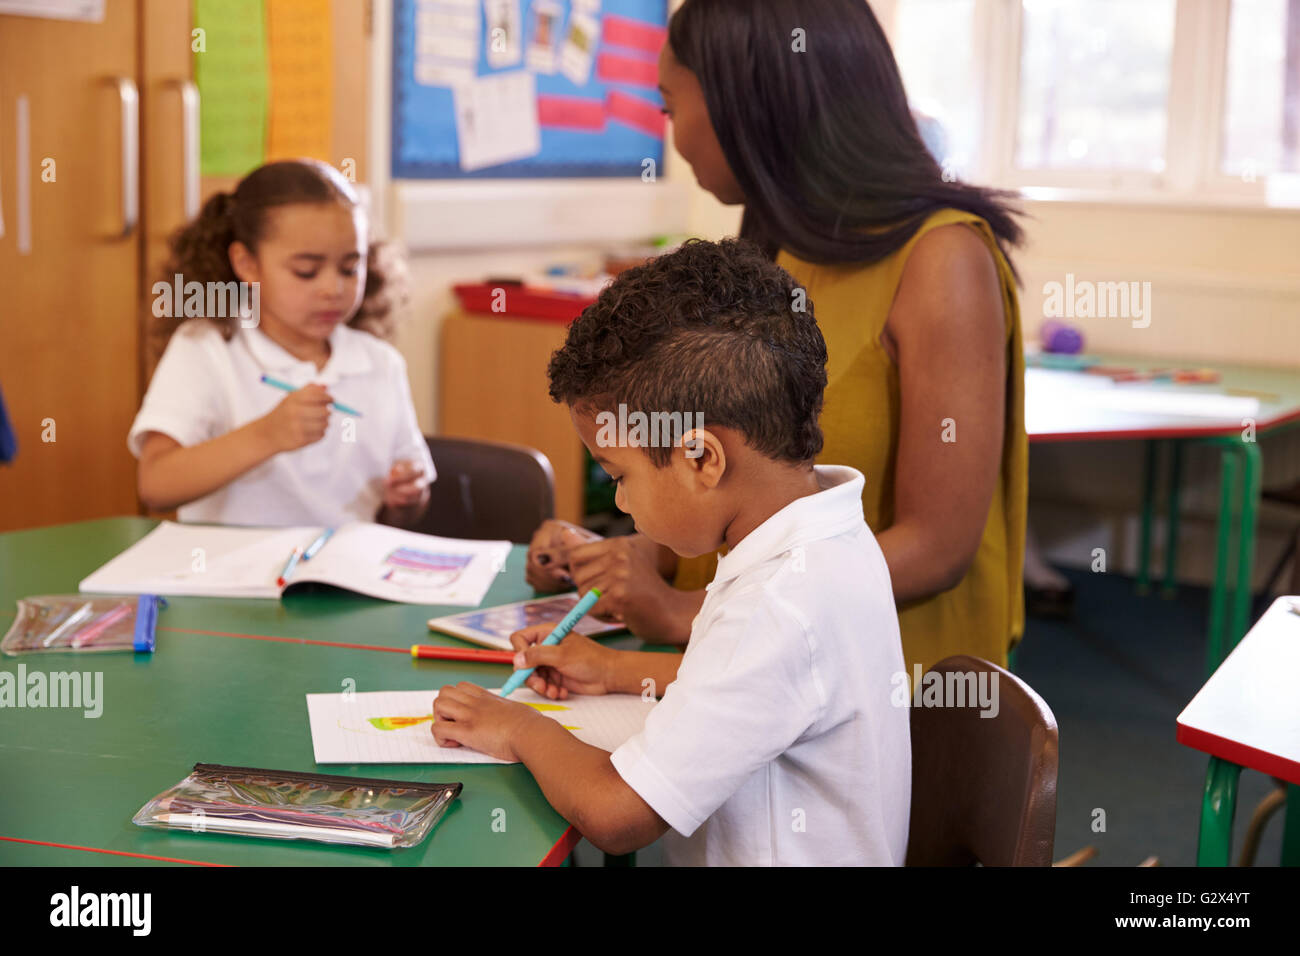 Female Elementary School Teacher Helping Pupils At Desk - Stock Image